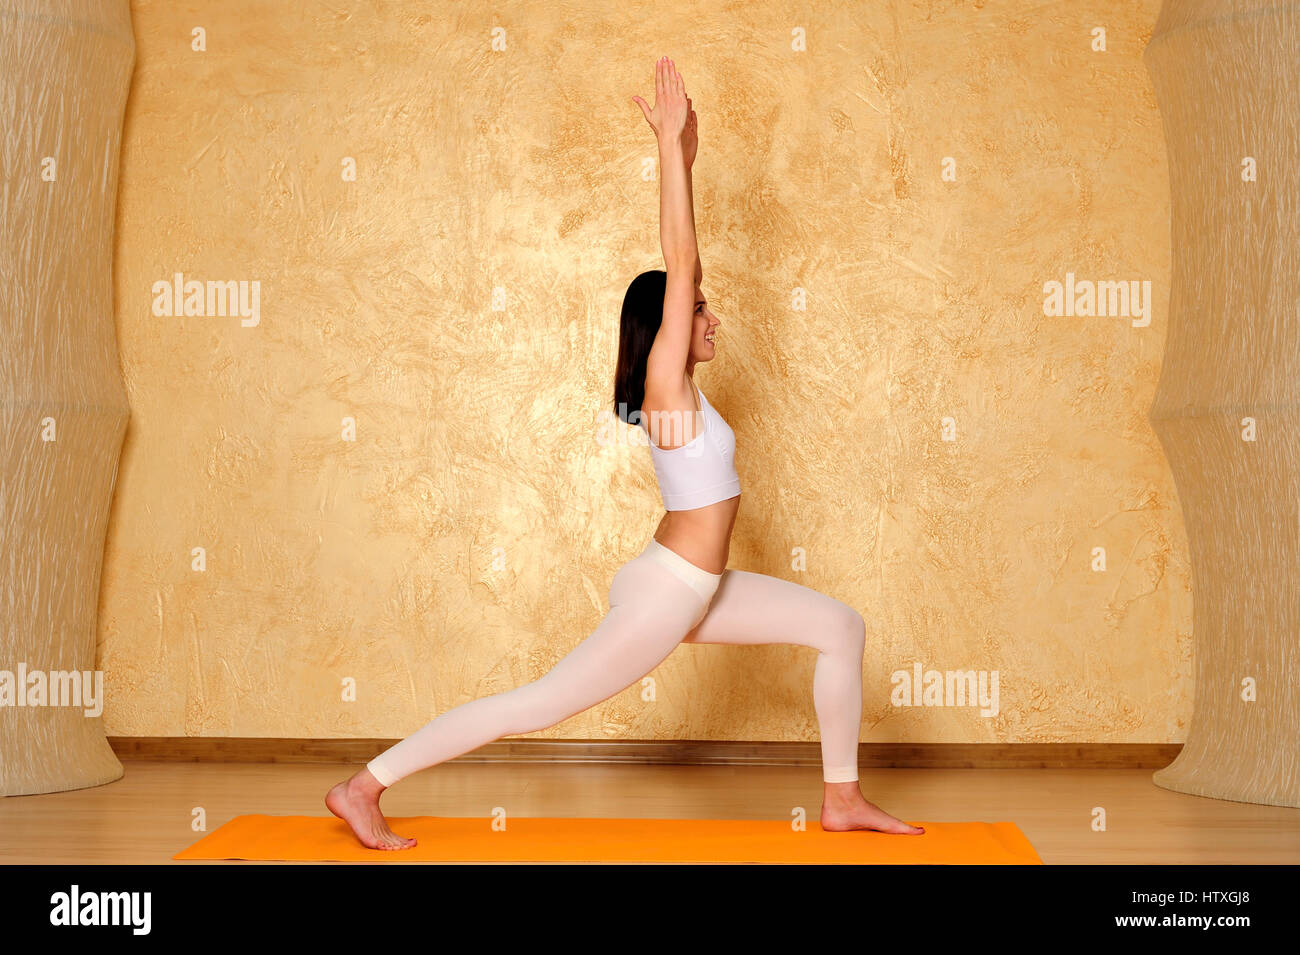 action, activity, balance, beauty, body, care, concentration, concepts, contemplation, exercise, female, flexibility, - Stock Image